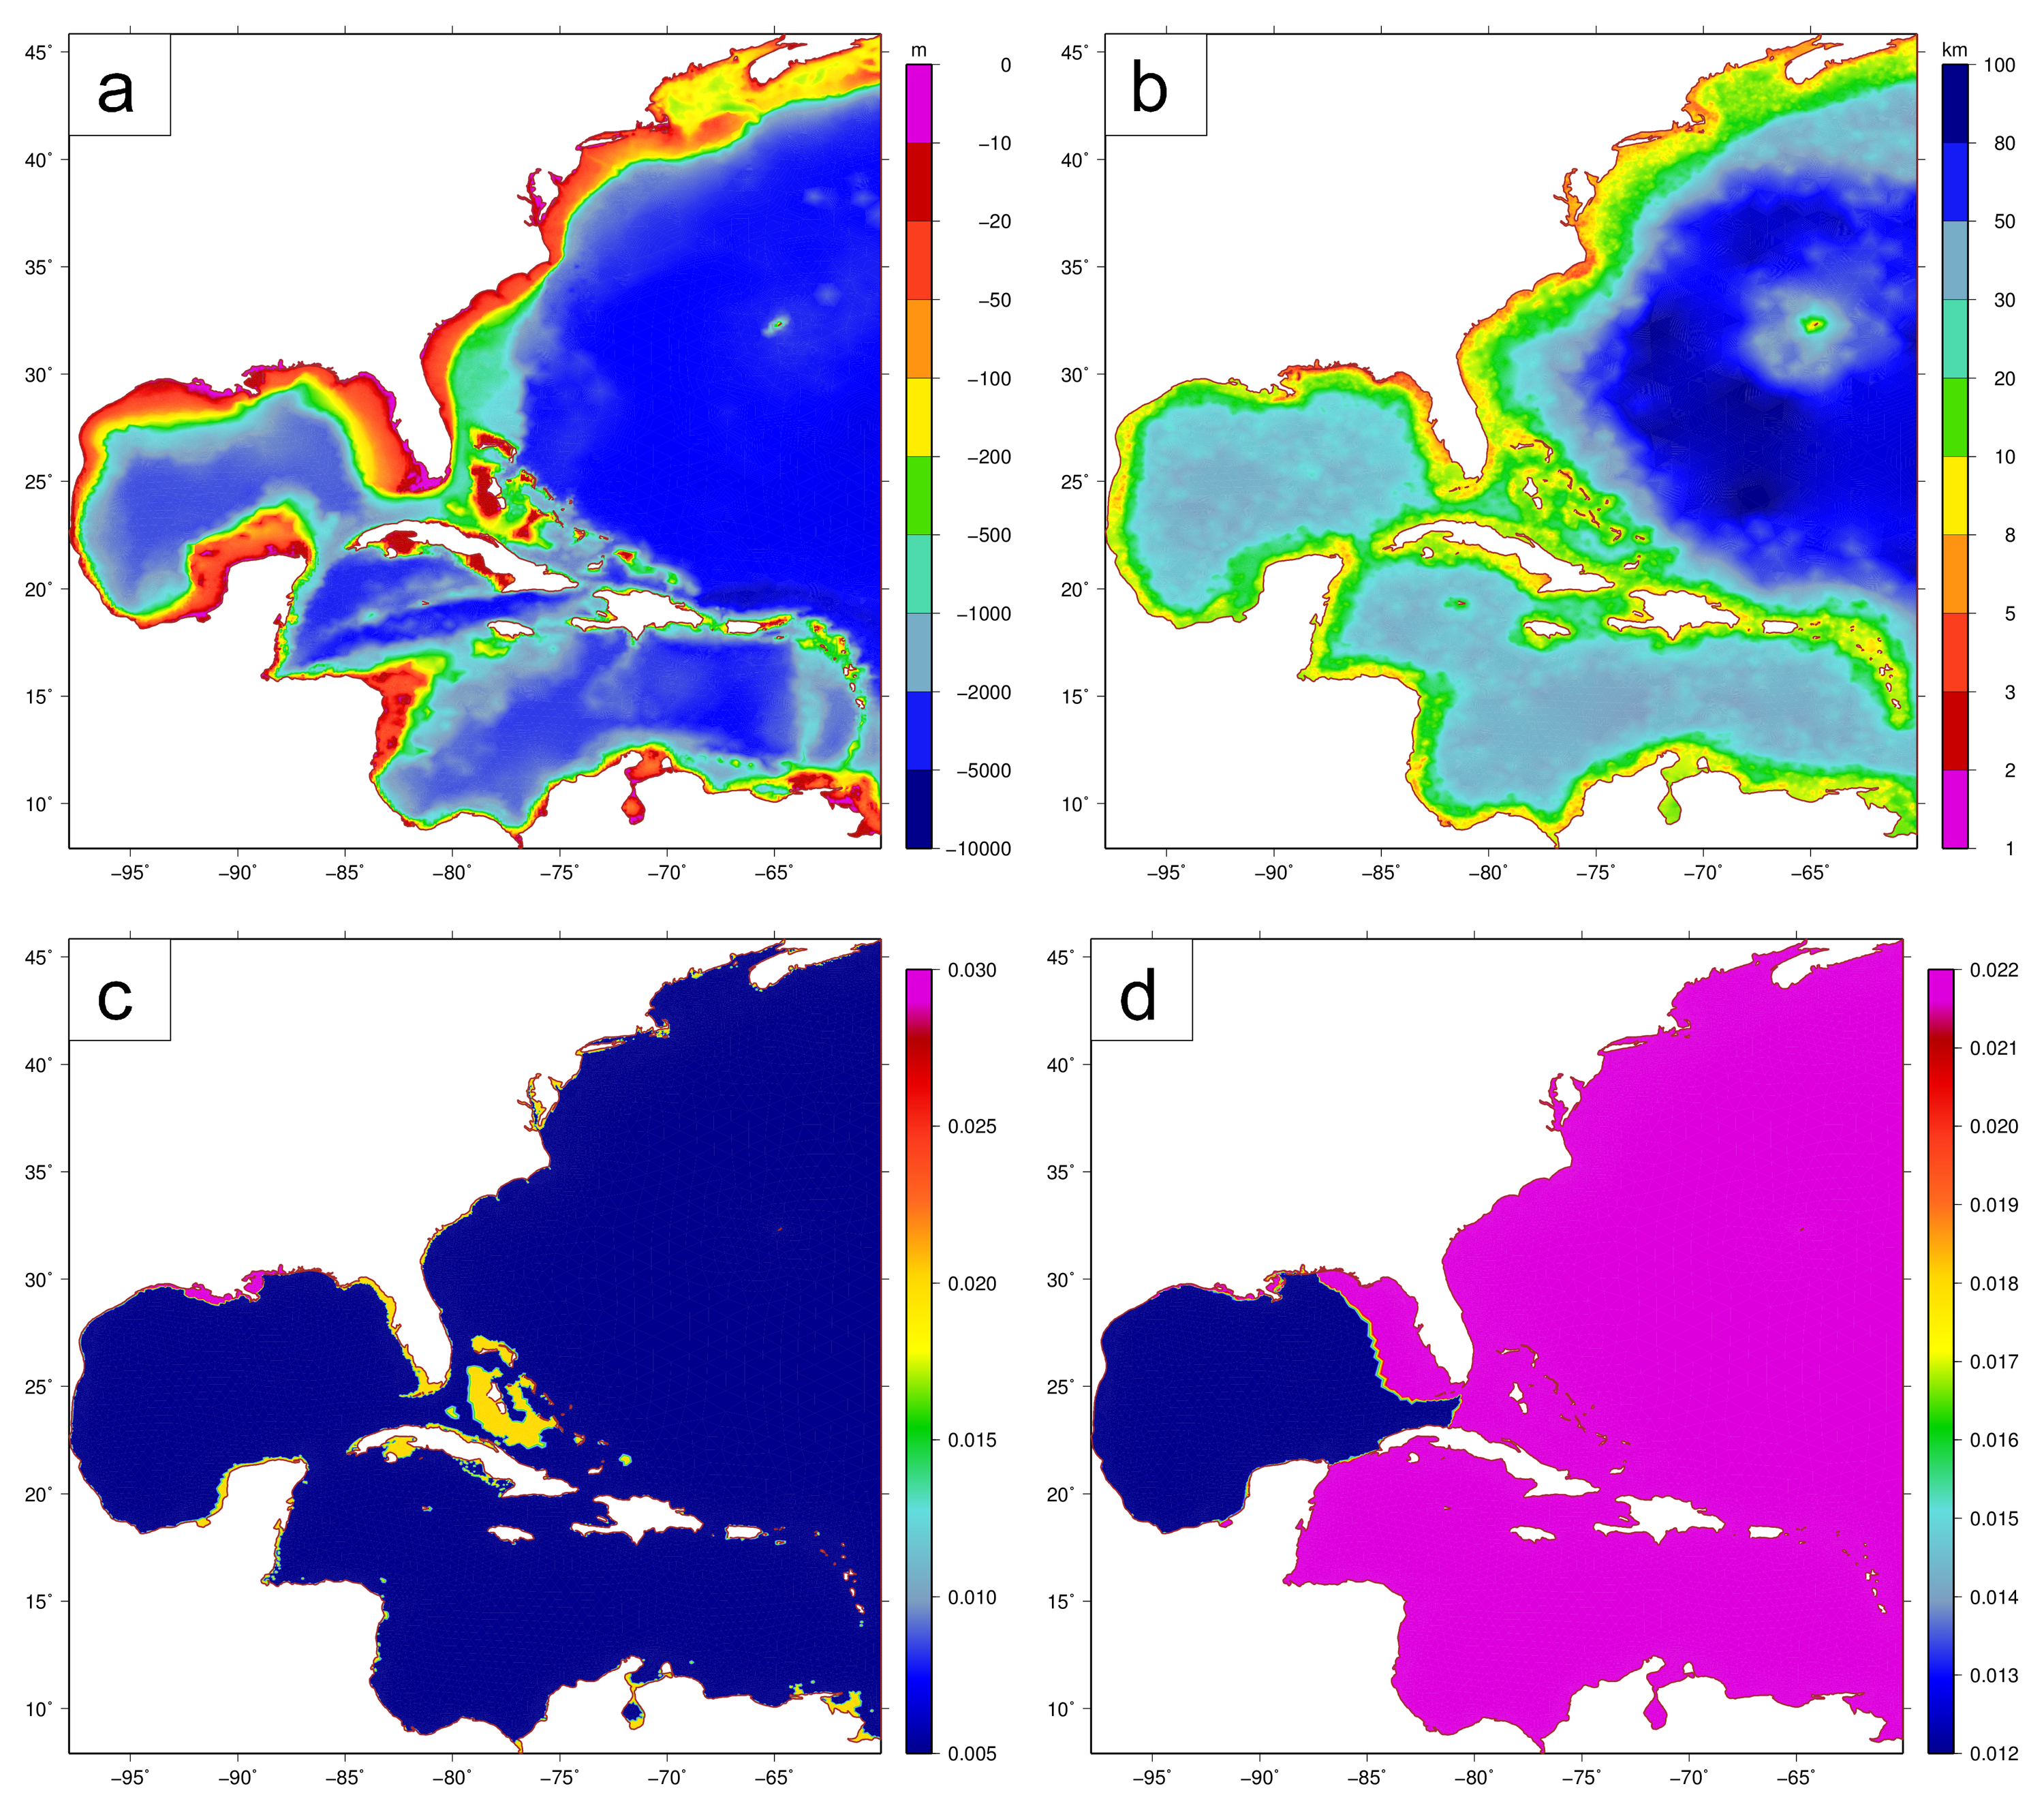 Figure 1: Panels of EC95d mesh (a) bathymetry (m) and (b) spacings (km), and vertex-based attributes of (c) primitive weighting in the GWCE and (d) Manning's n values.